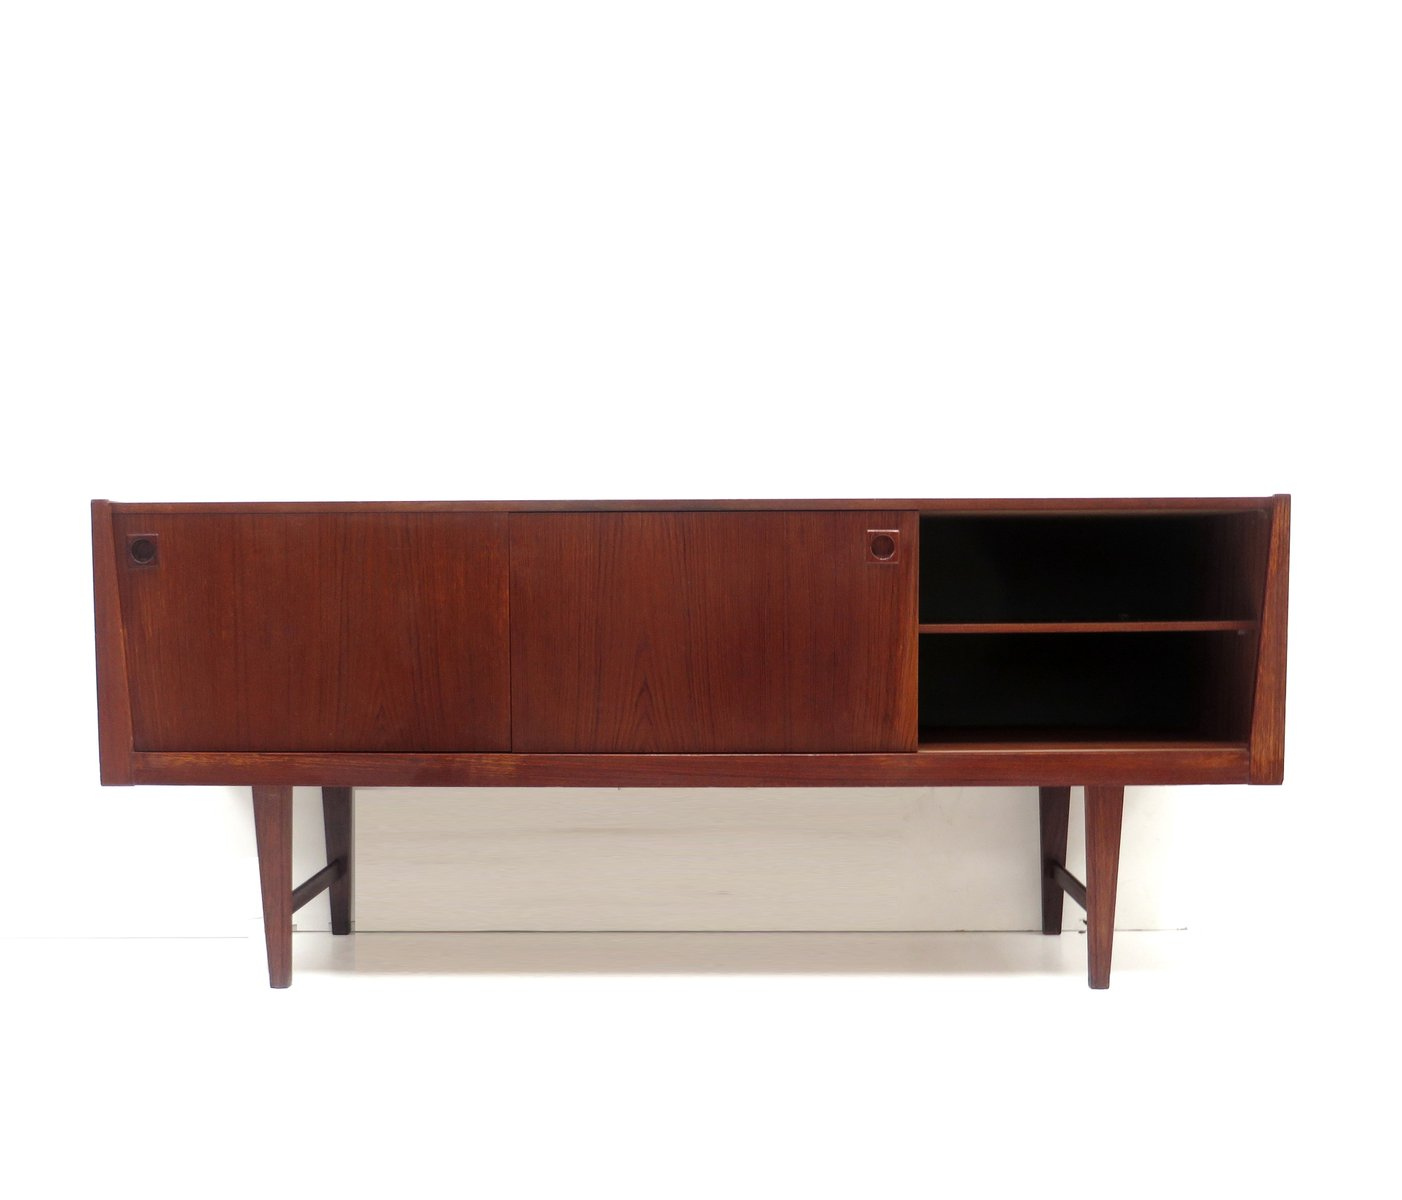 vintage sideboard with handles 1960s for sale at pamono. Black Bedroom Furniture Sets. Home Design Ideas